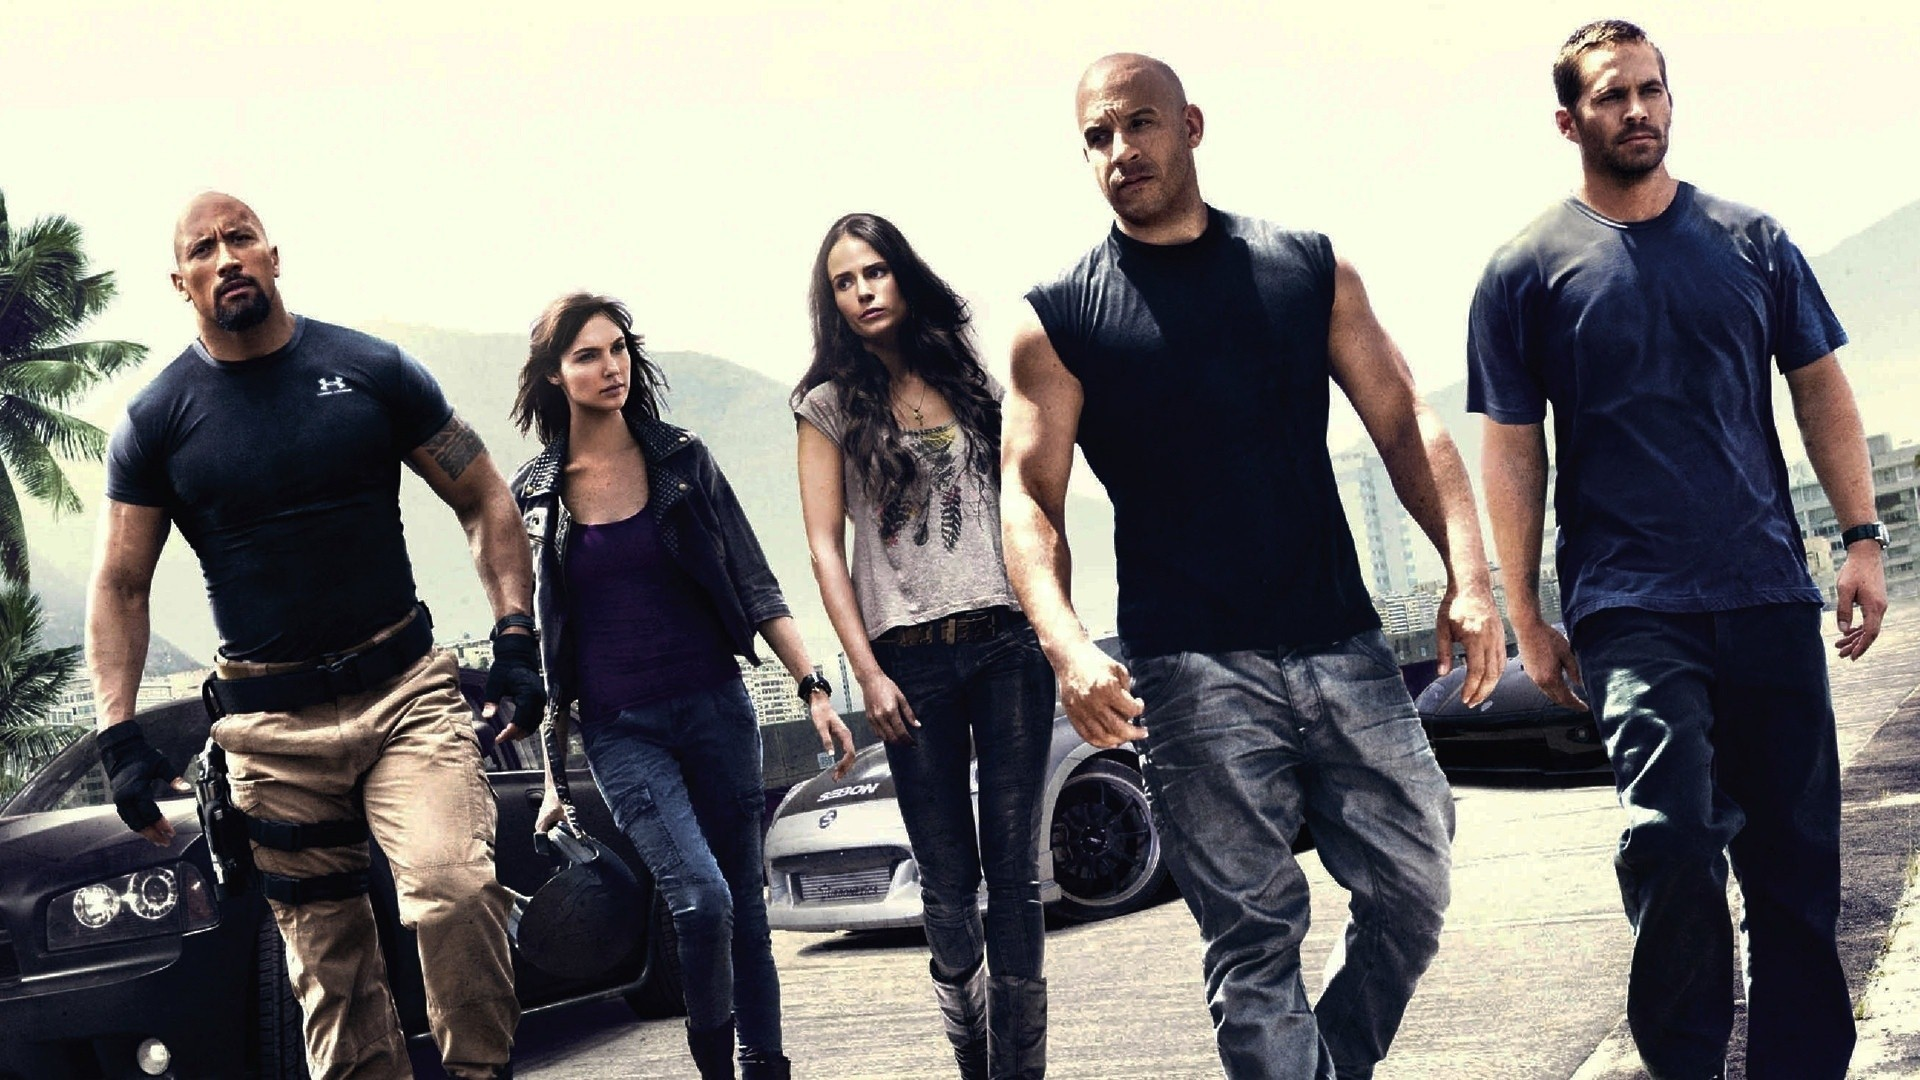 Actors of Fast and Furious movie